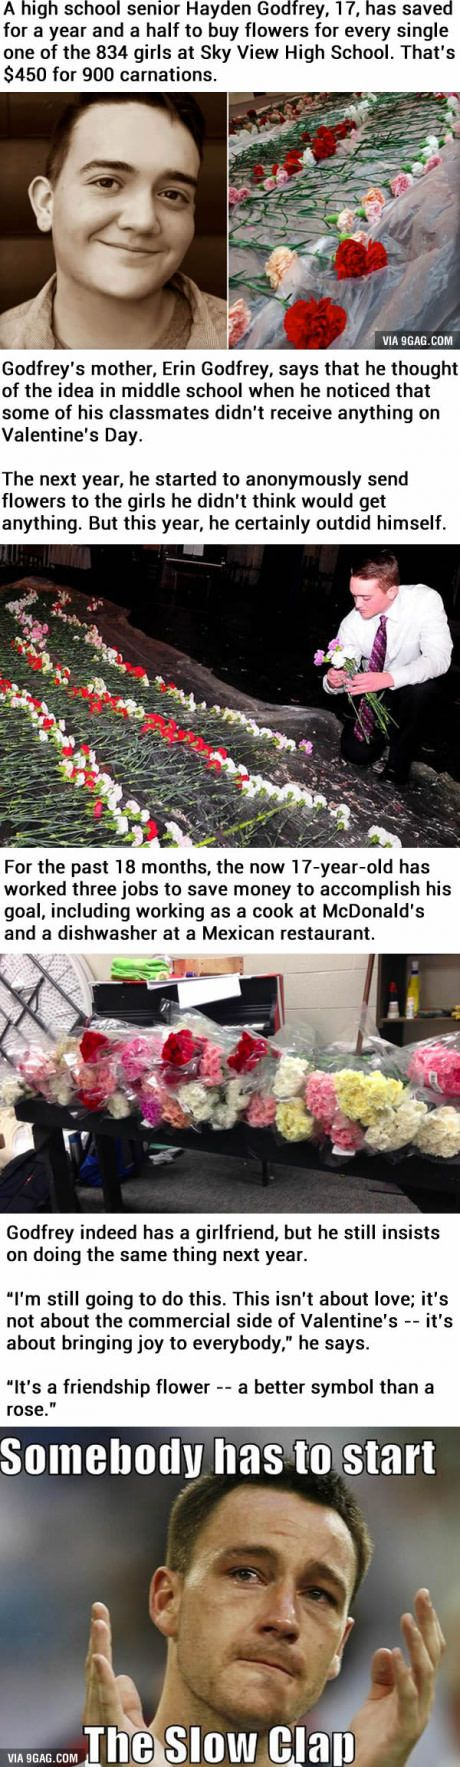 This boy bought flowers for all 834 girls at his school for Valentine's Day